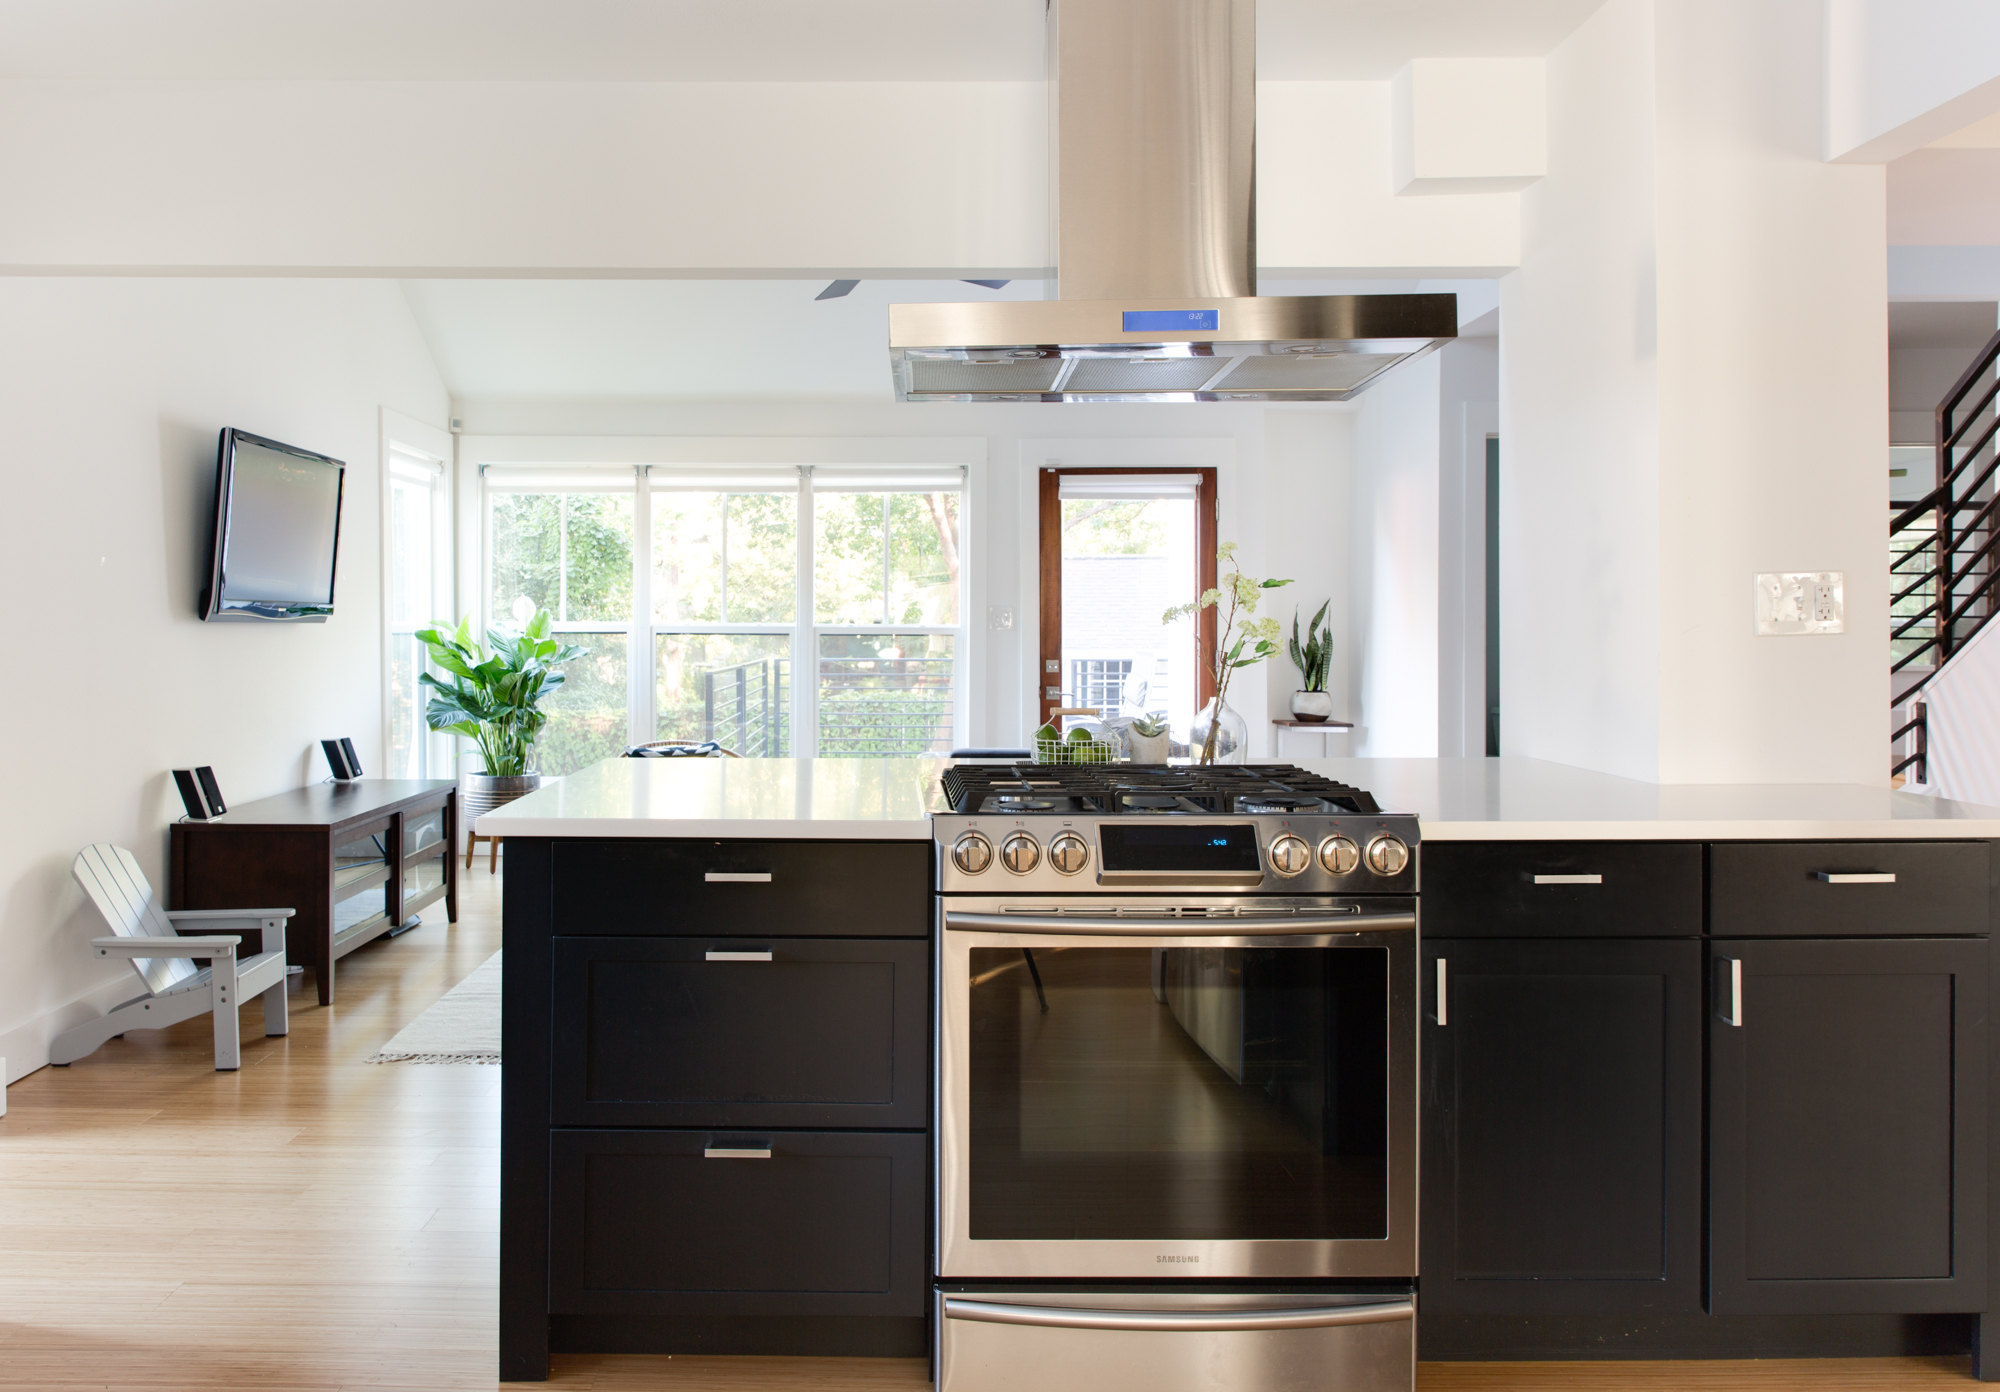 Ing A New Kitchen Range Read This First Apartment Therapy